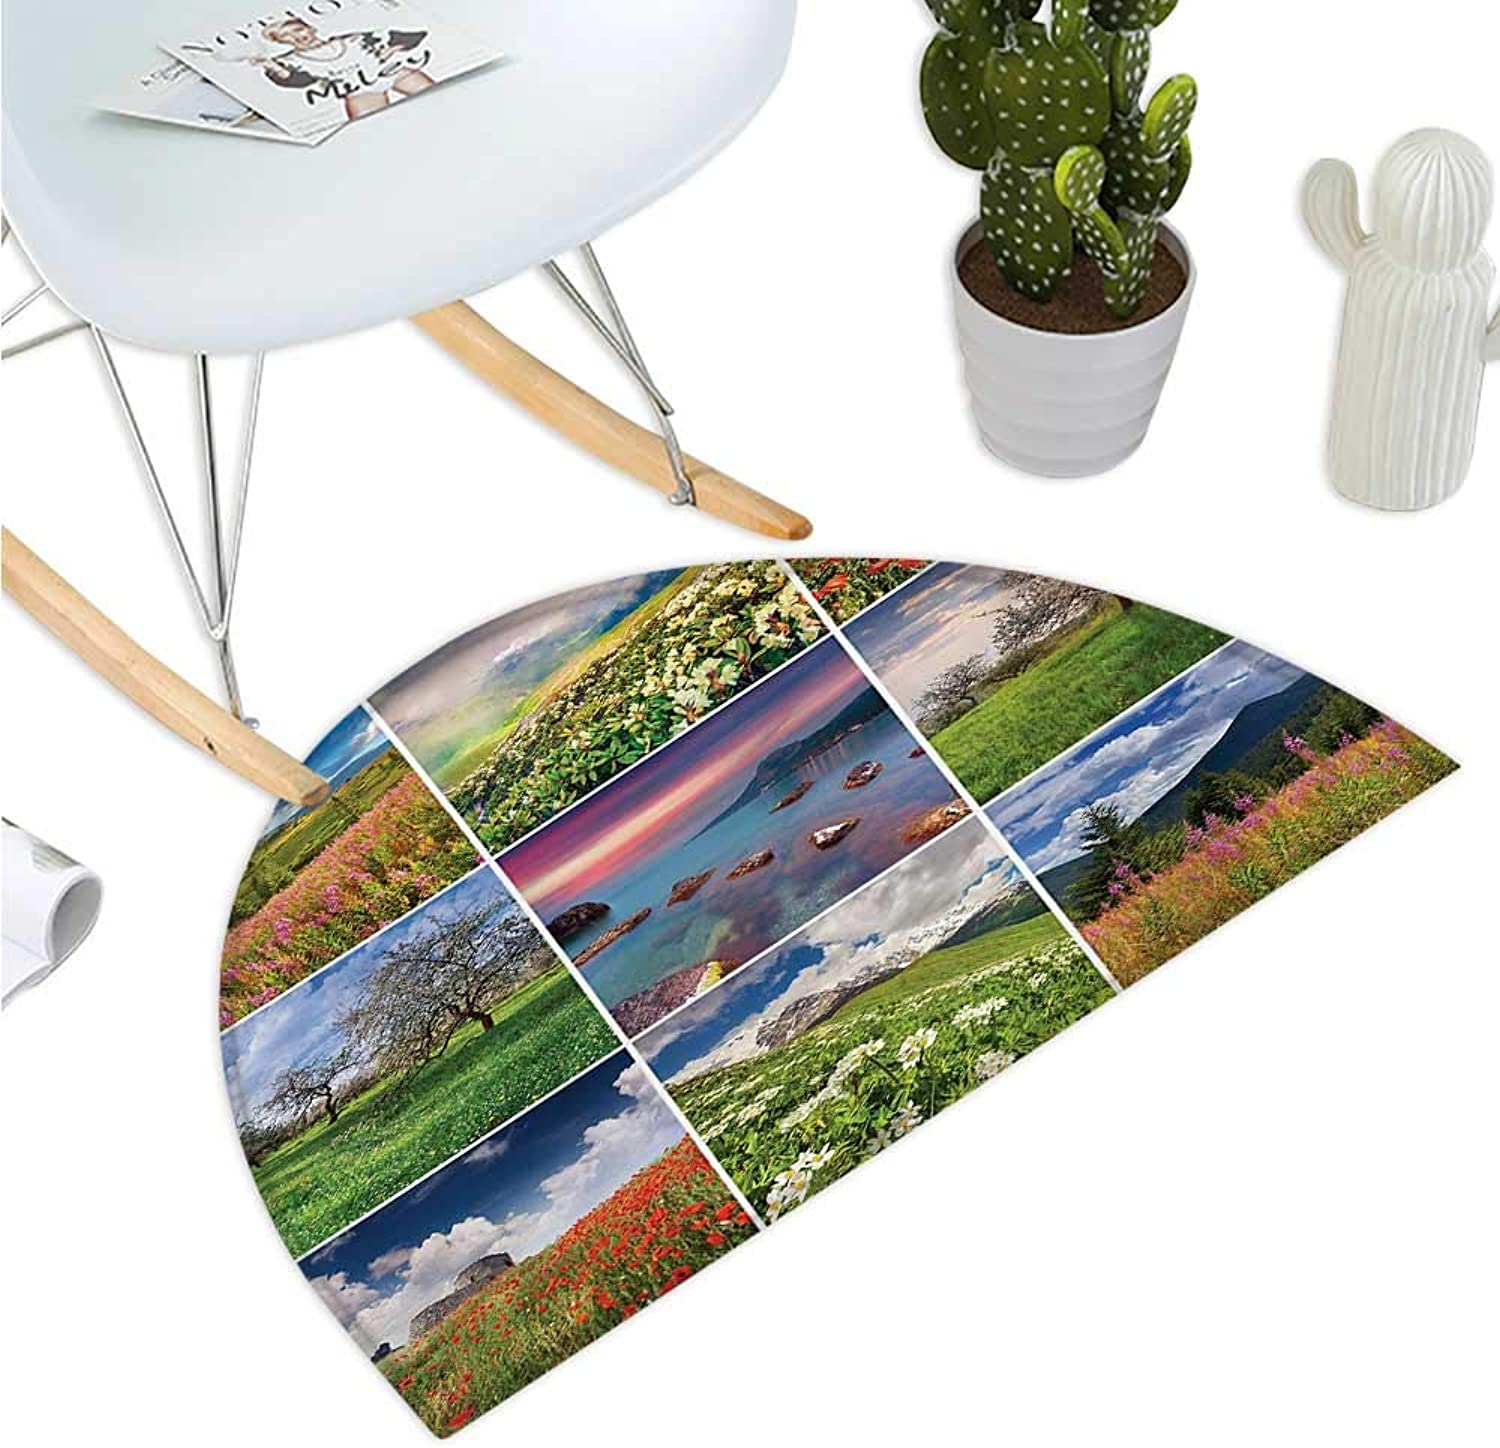 Summer Semicircle Doormat Collage with Nine Different Square Framed Freshening Summer Landscapes Rural Nature Entry Door Mat H 43.3  xD 64.9  Multicolor